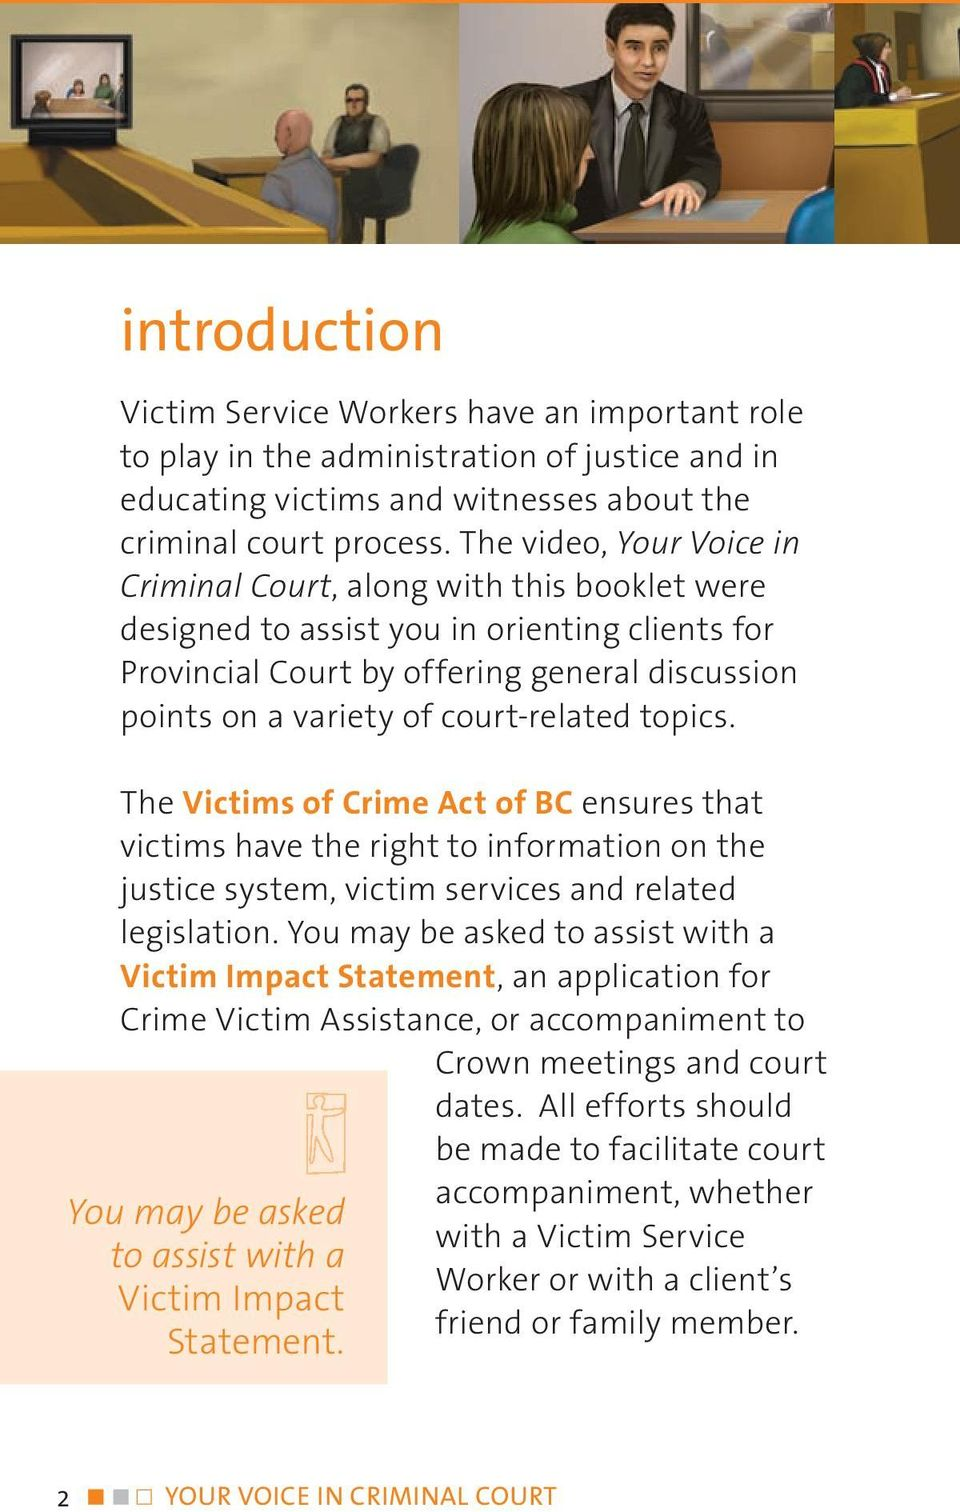 court-related topics. The Victims of Crime Act of BC ensures that victims have the right to information on the justice system, victim services and related legislation.